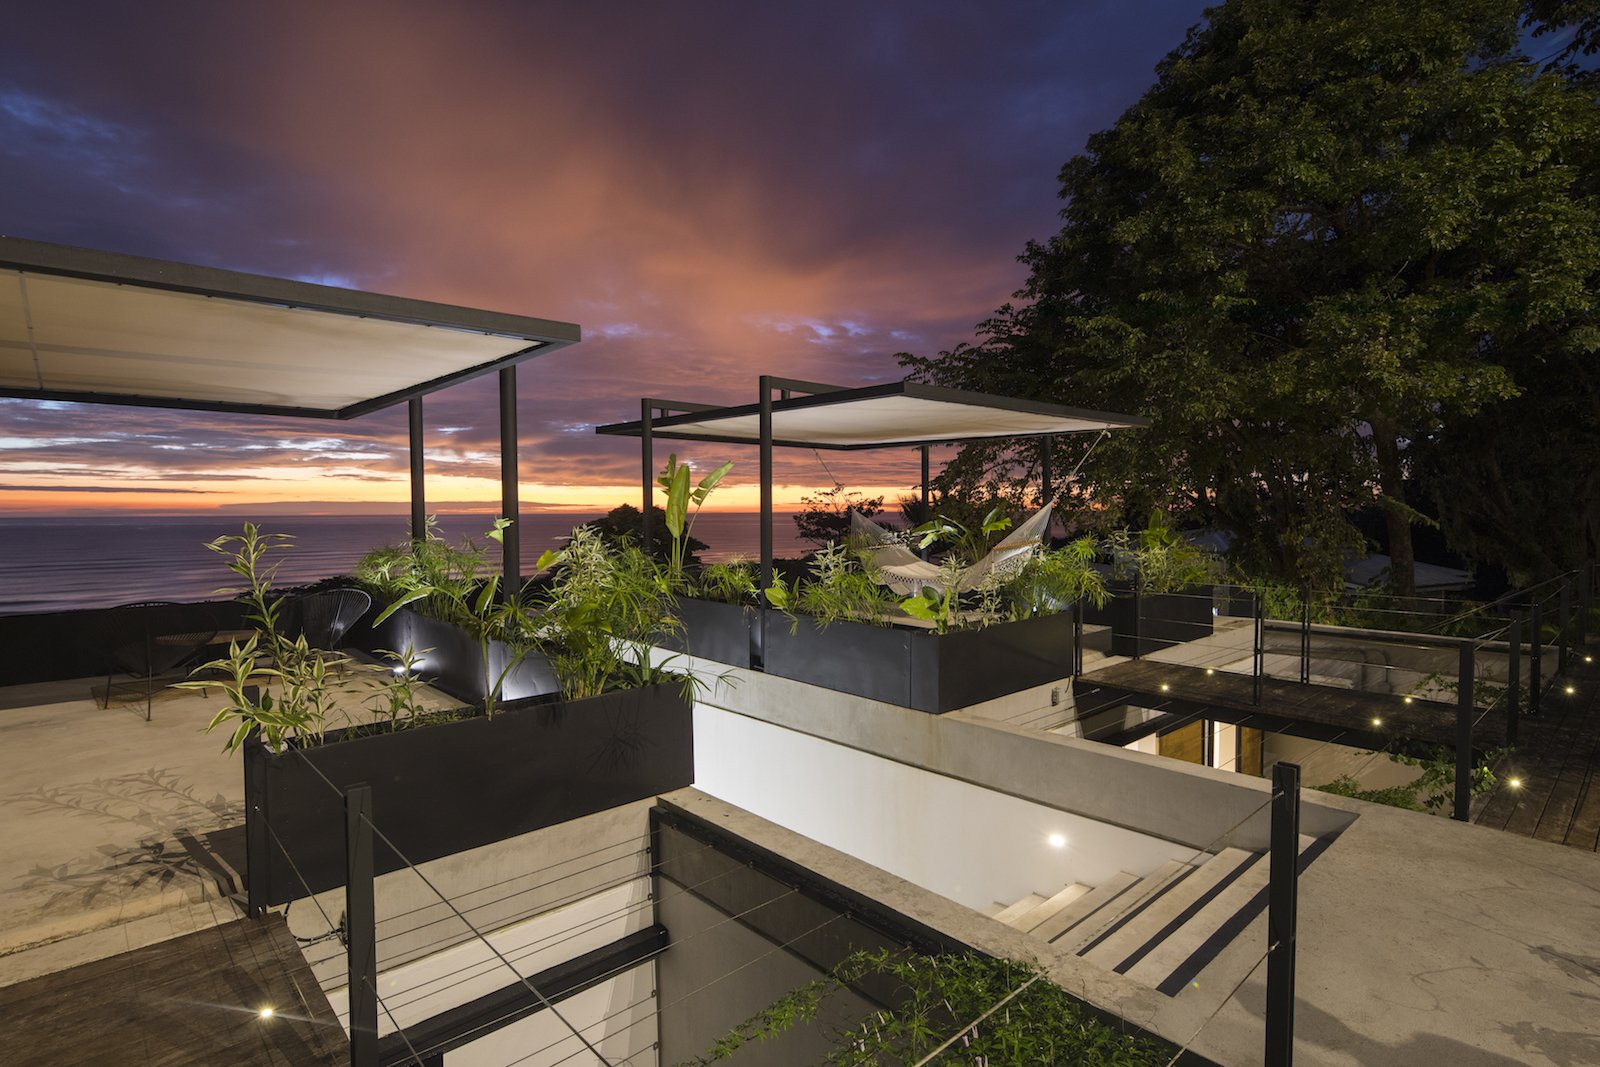 Outdoor, Shrubs, Rooftop, Concrete, Grass, Small, and Wire Mint's elevated location offers stellar sunset viewing.  Best Outdoor Rooftop Concrete Photos from Revive Your Mind at This Adults–Only Boutique Hotel in Costa Rica